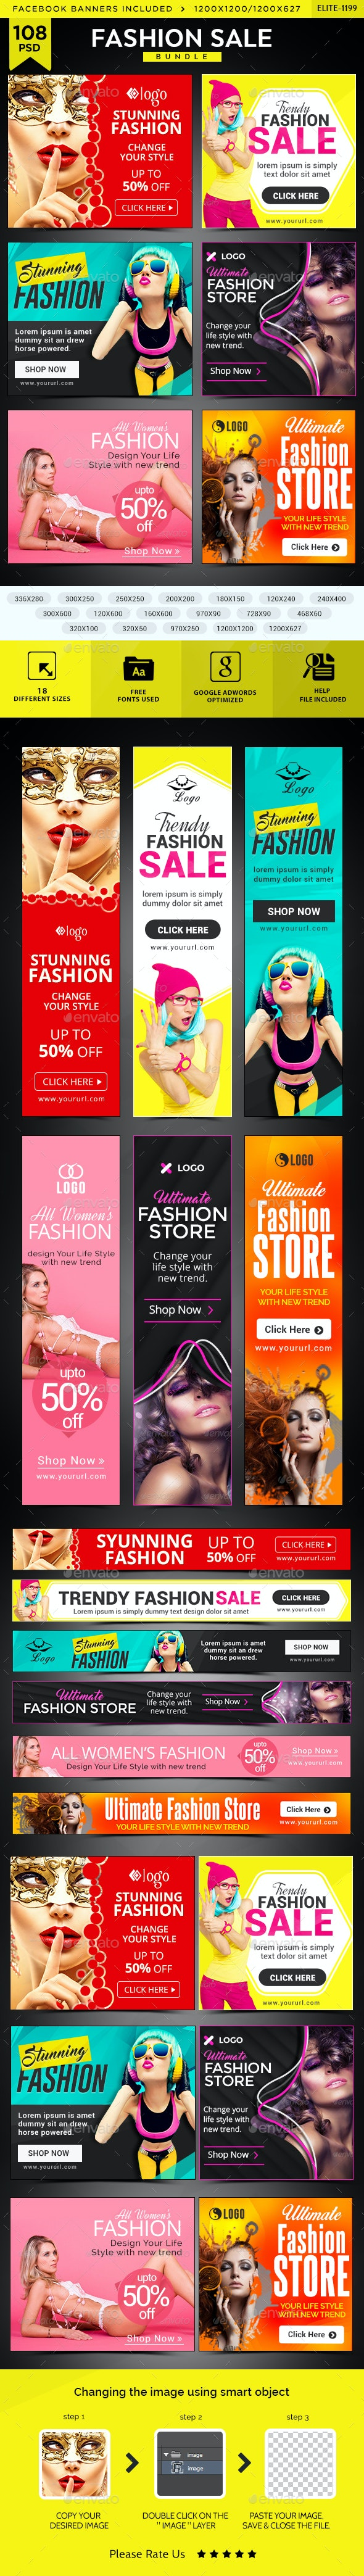 Fashion Sale Banners Bundle - 6 Sets - Banners & Ads Web Elements